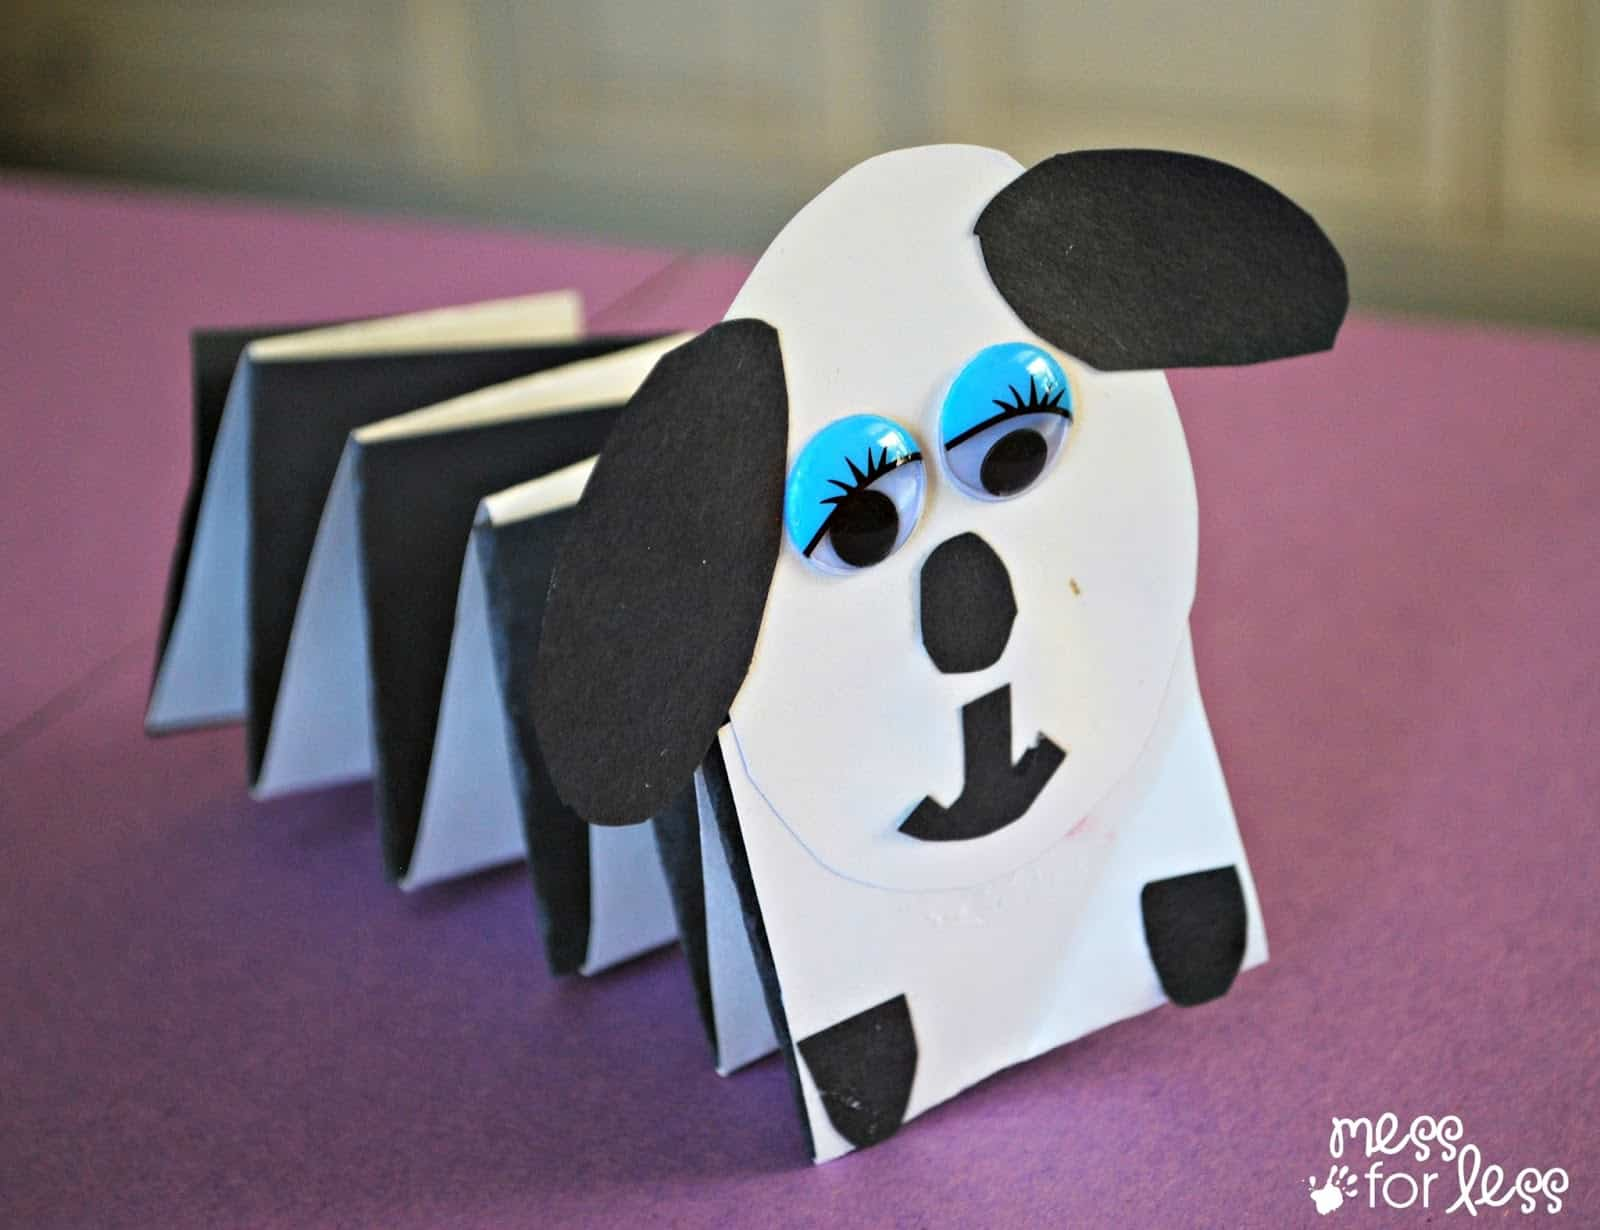 Paper crafts for kids spring dog mess for less kids paper crafts spring dog jeuxipadfo Image collections